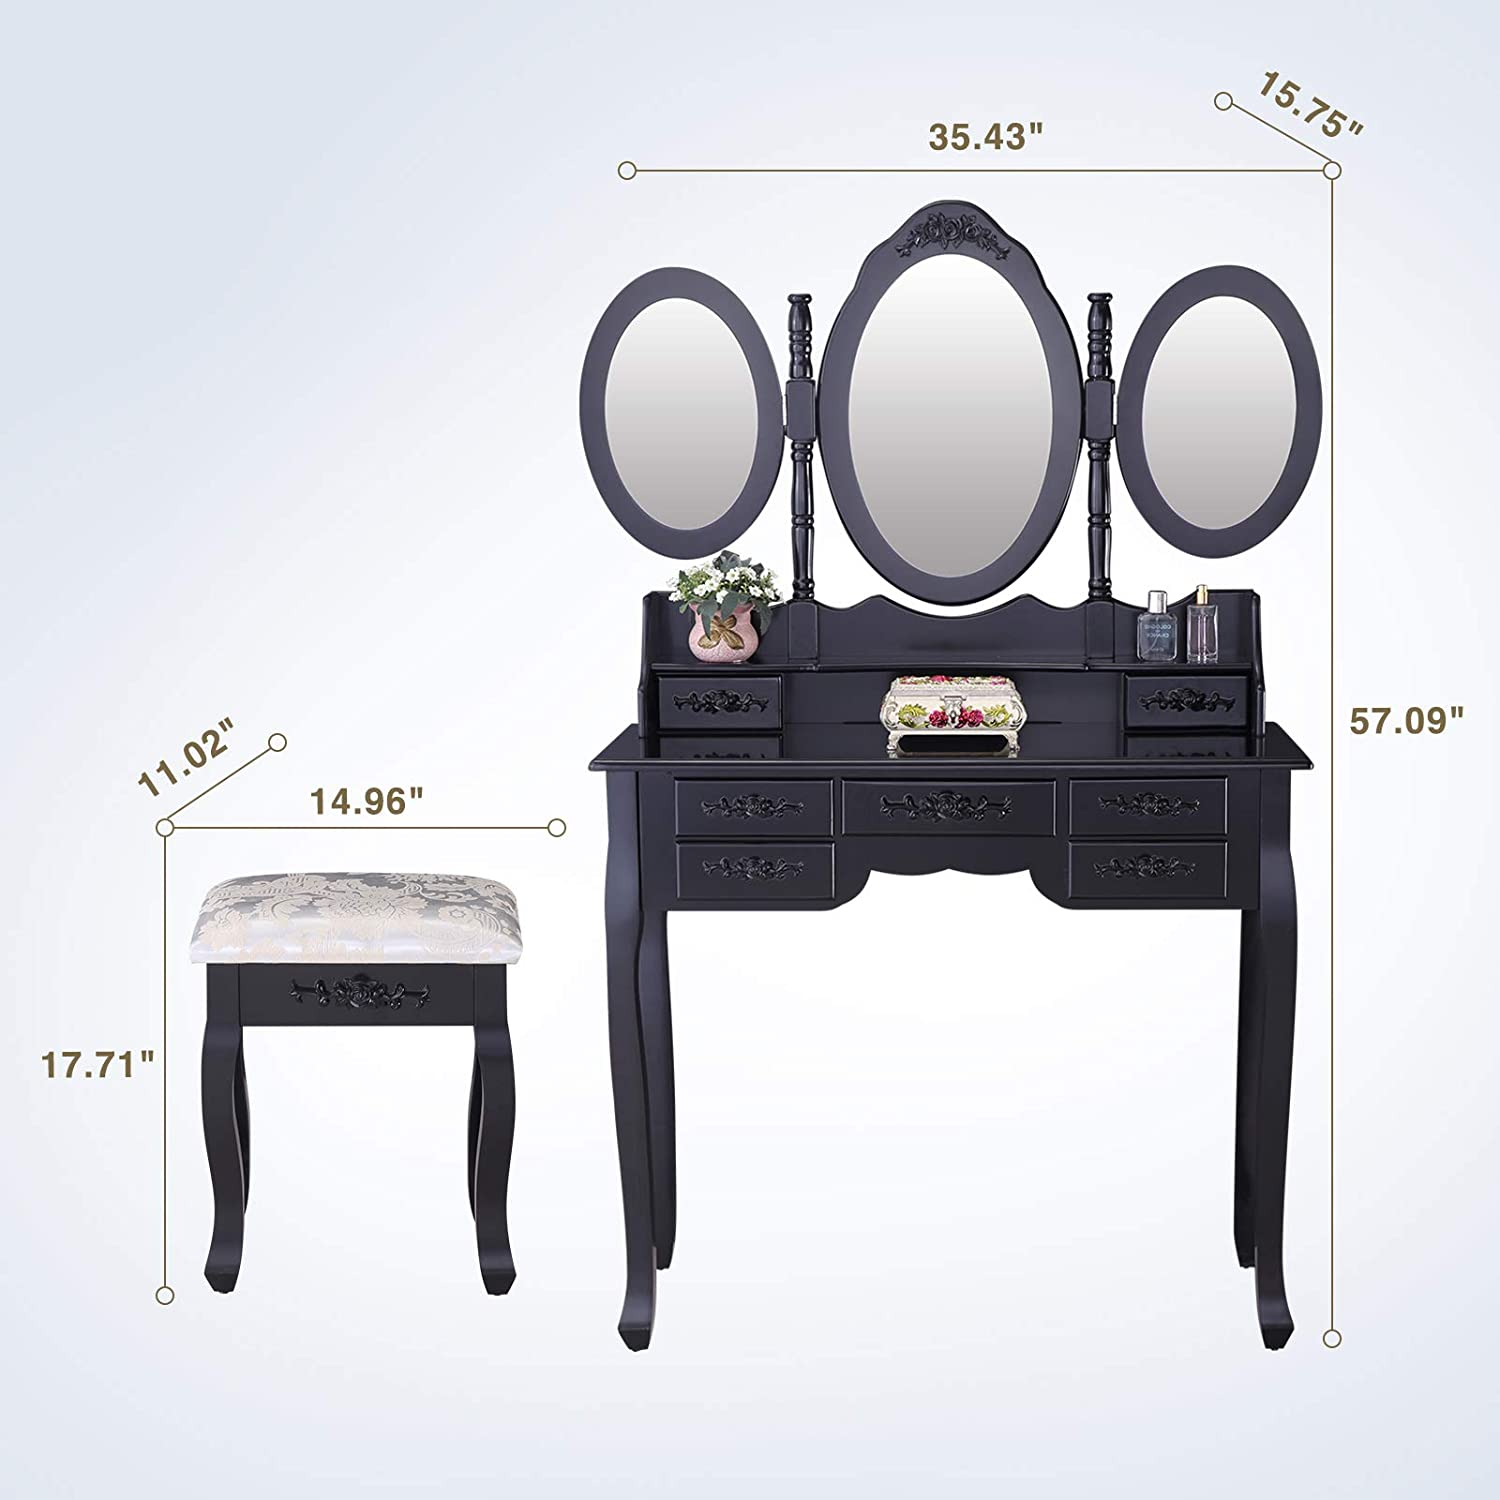 Mecor Vanity Table Set with Mirror, Dressing Table Vanity Makeup Table with Drawer/Stool,Black 1030303100